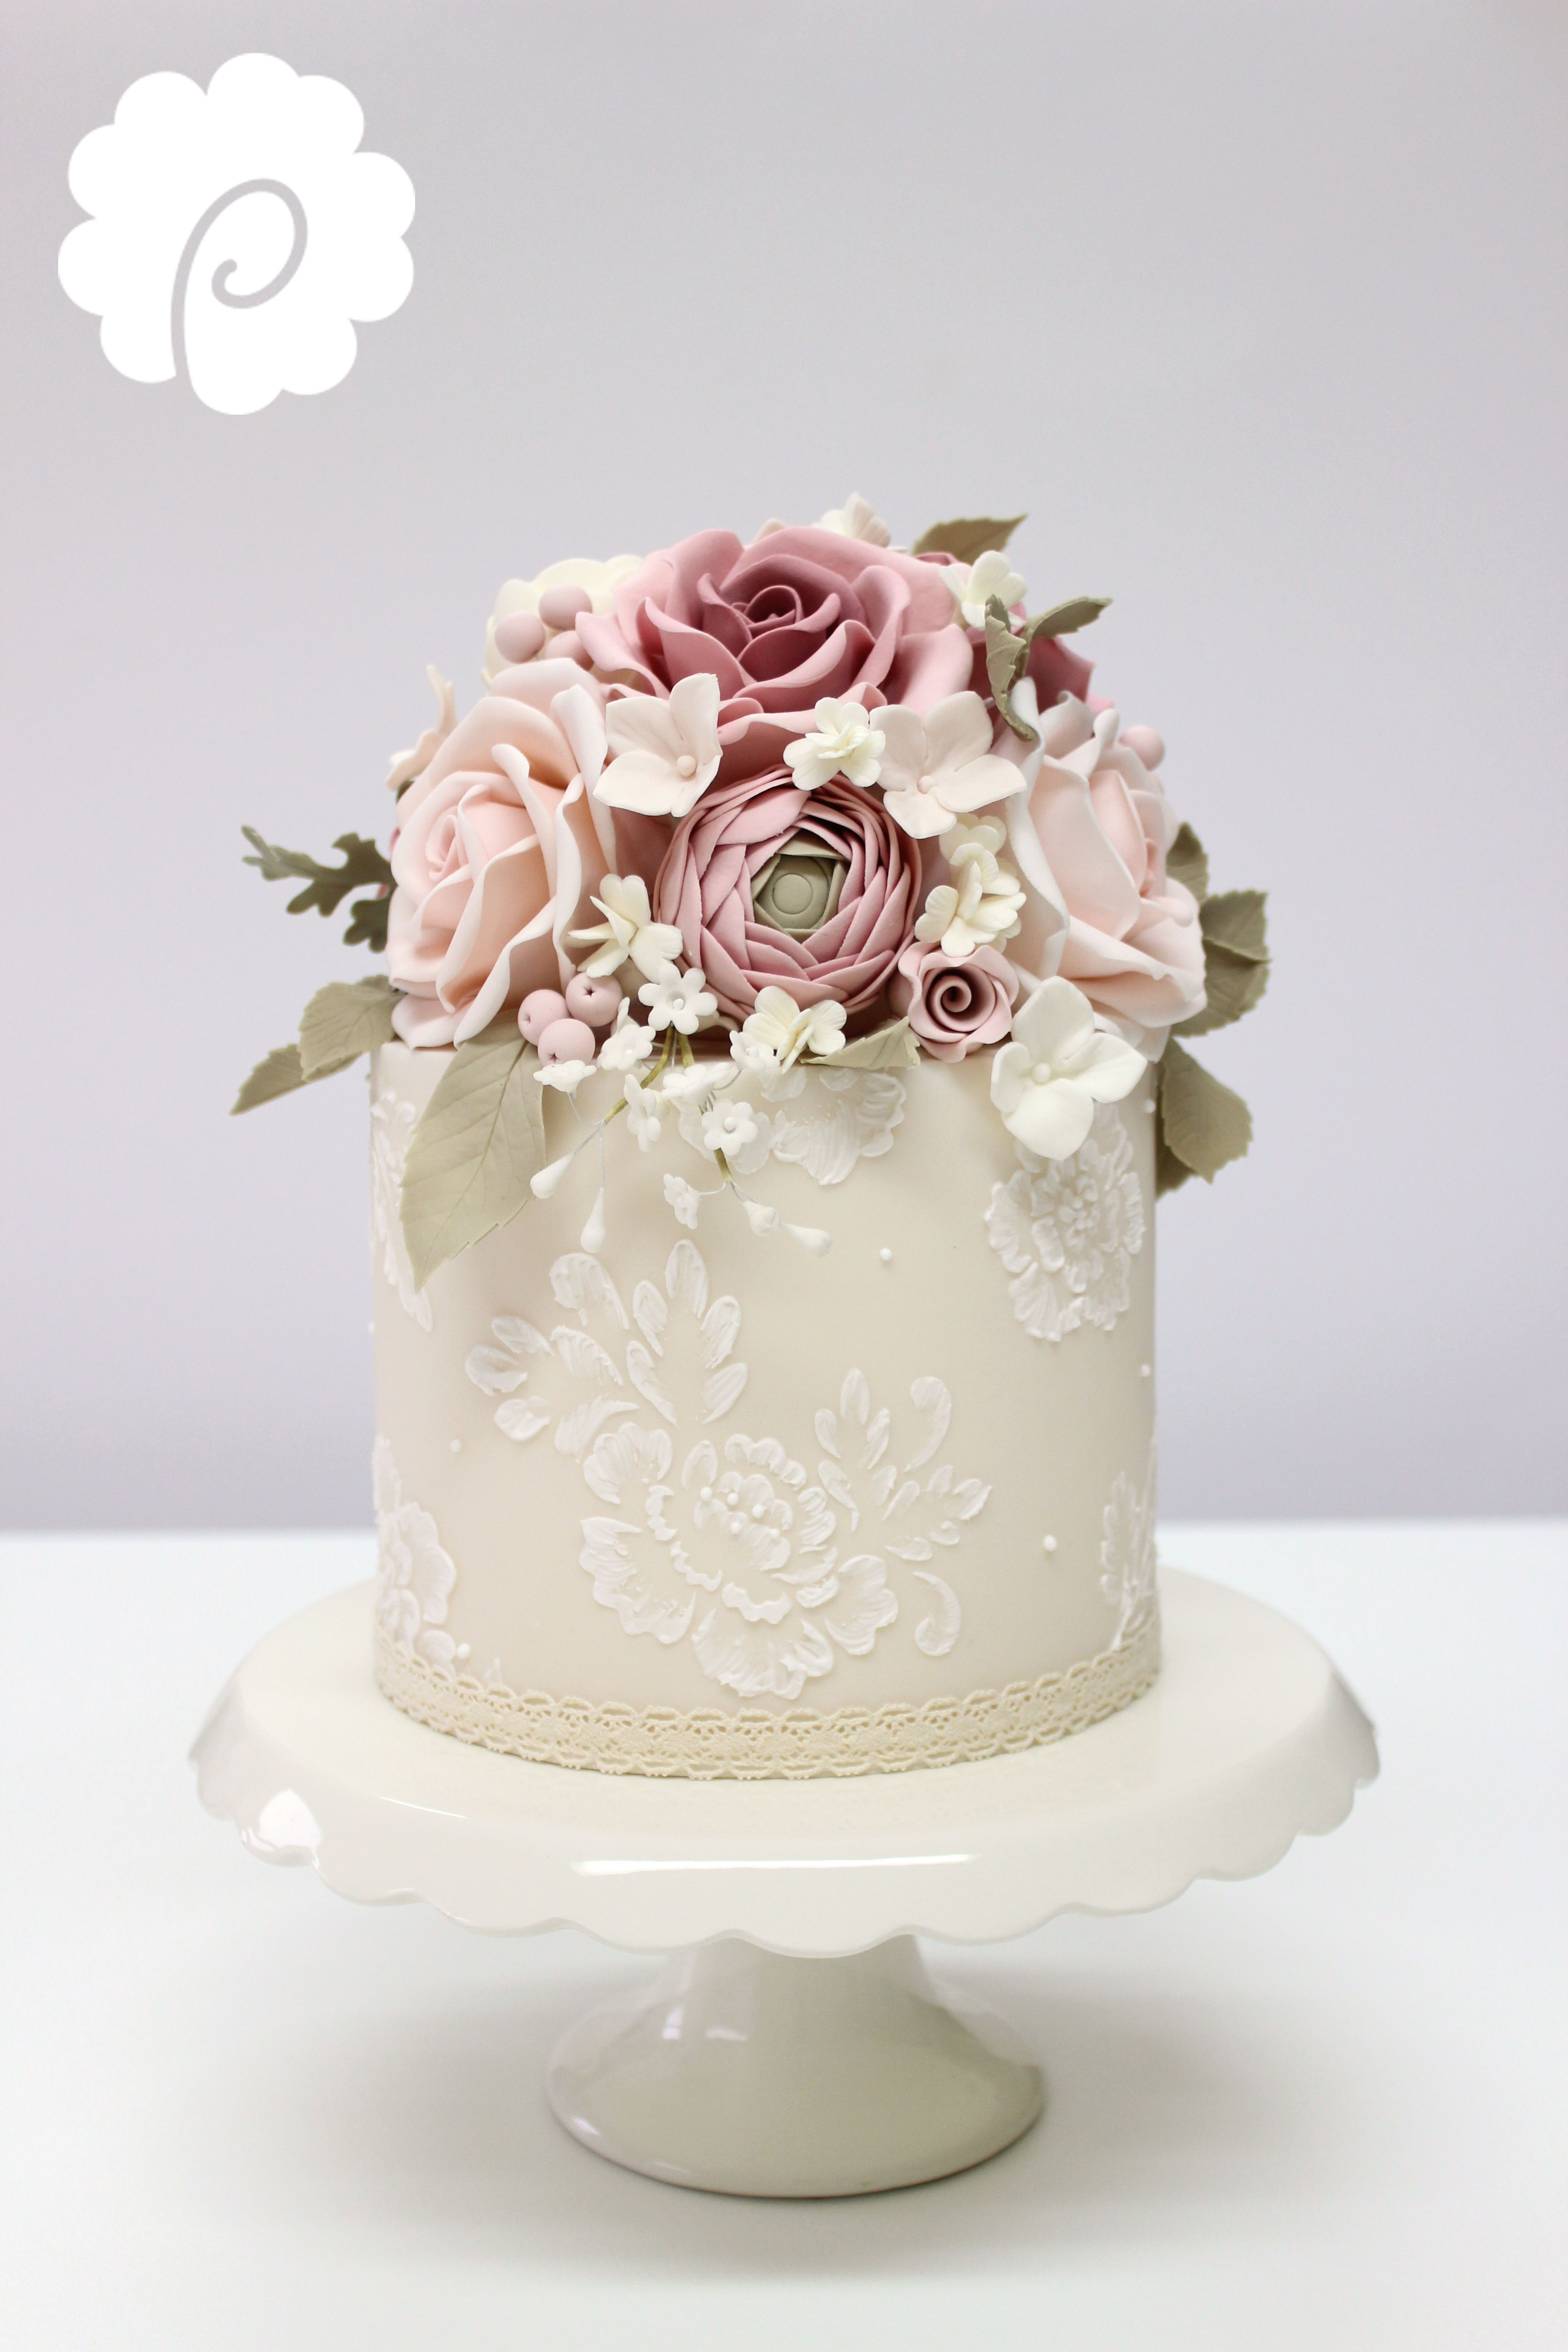 Sugar Flower Decorative Vintage Mini Wedding Cake In Soft Dusky